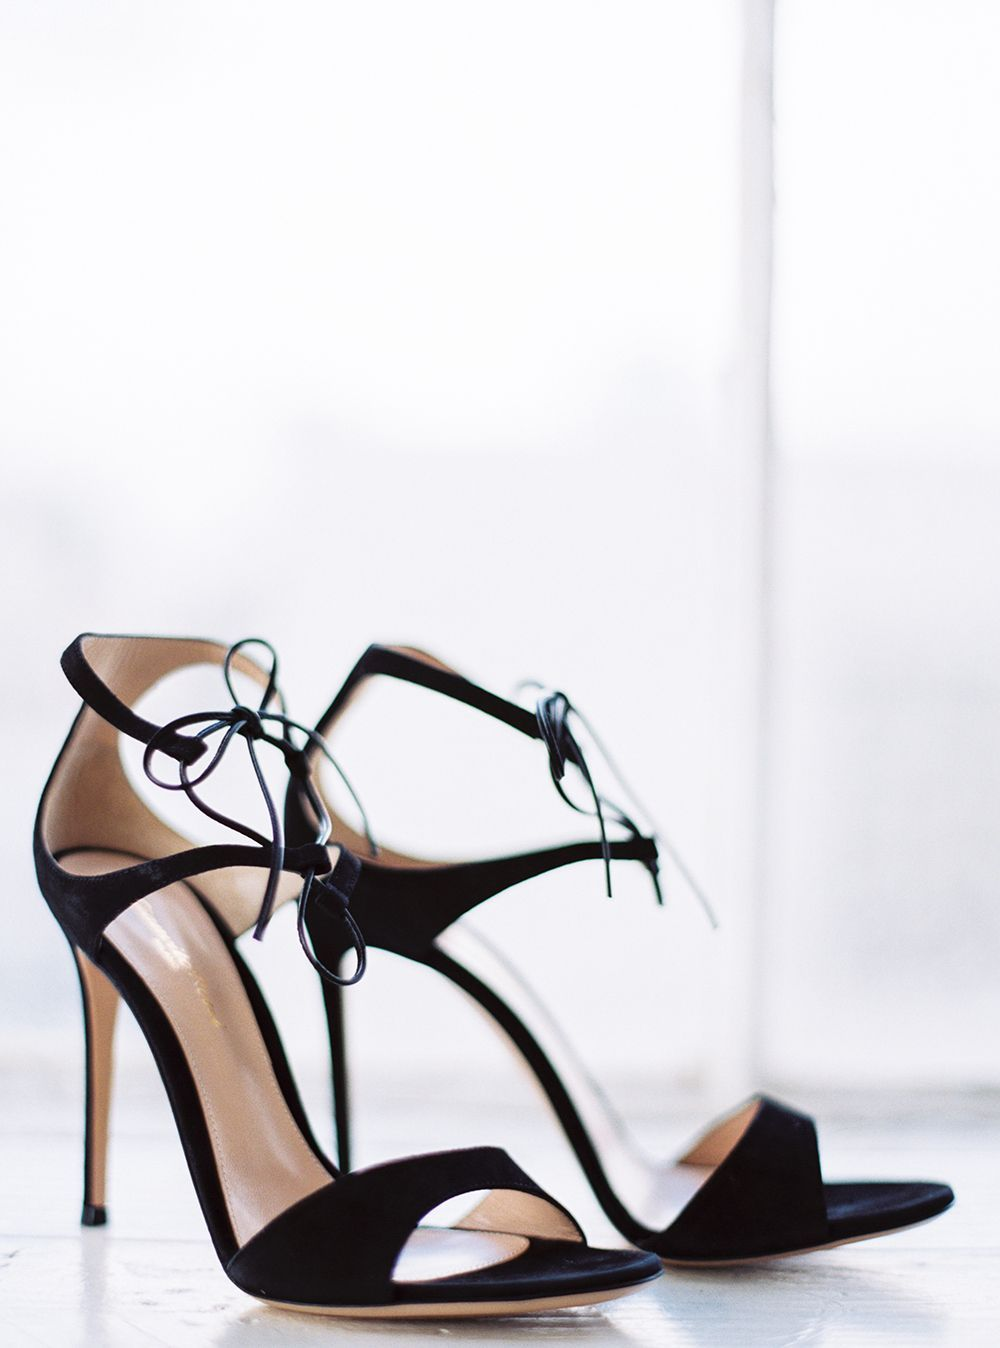 20-black-strappy-wedding-shoes